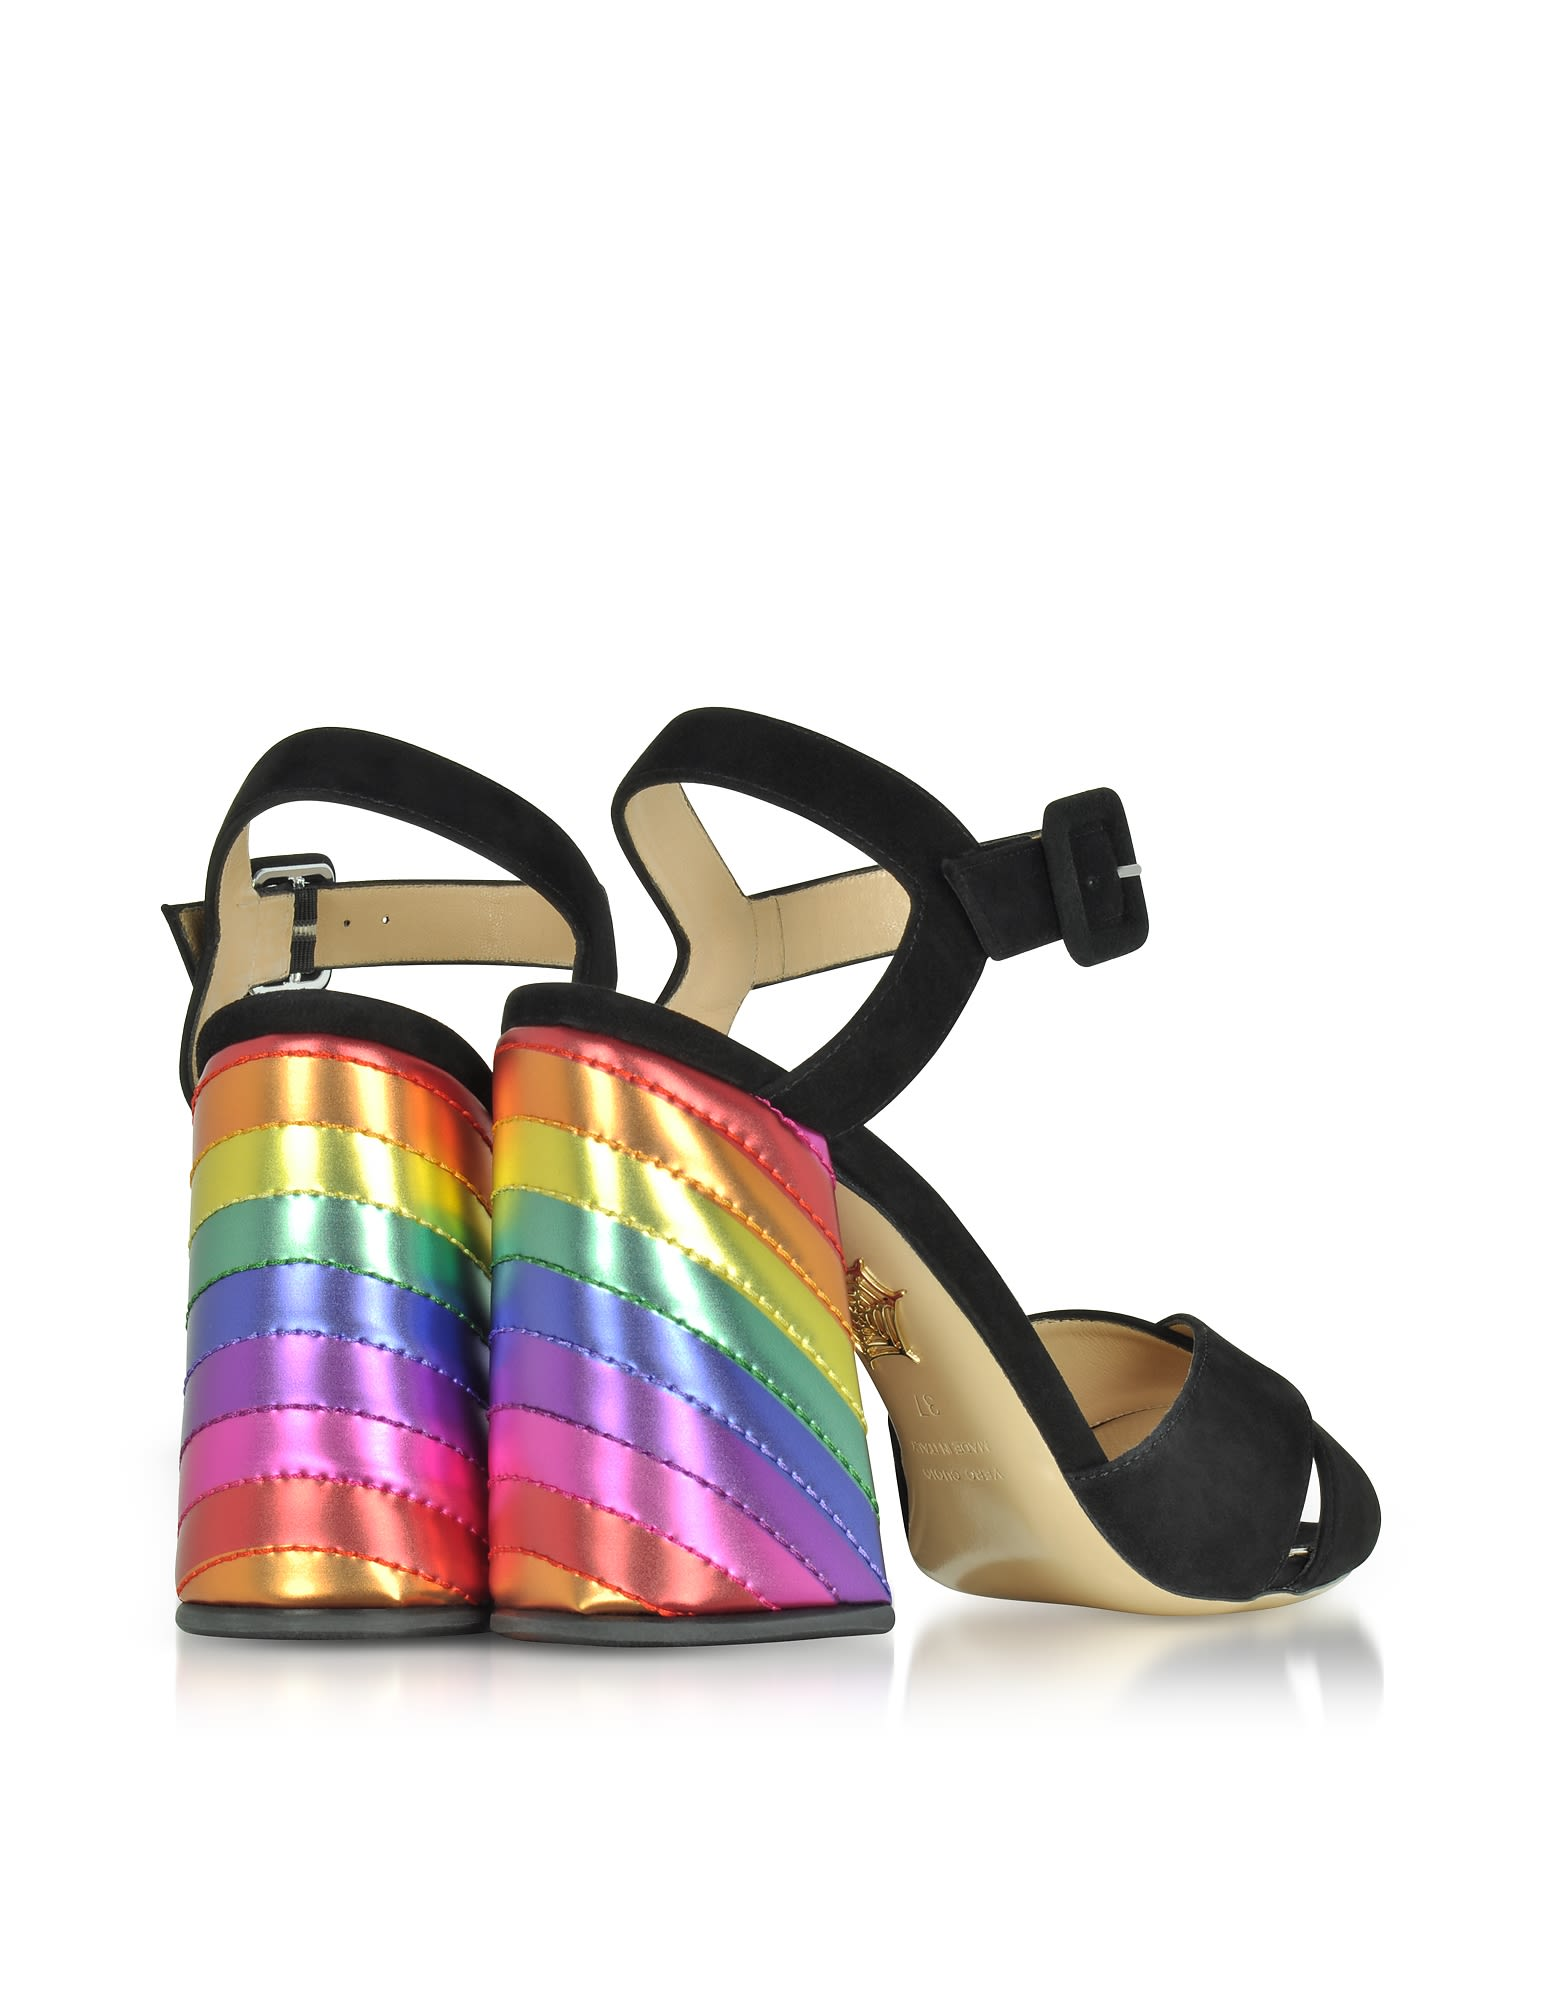 Charlotte Olympia Shoes, Emma Suede and Rainbow Patent Leather High Heel Sandals